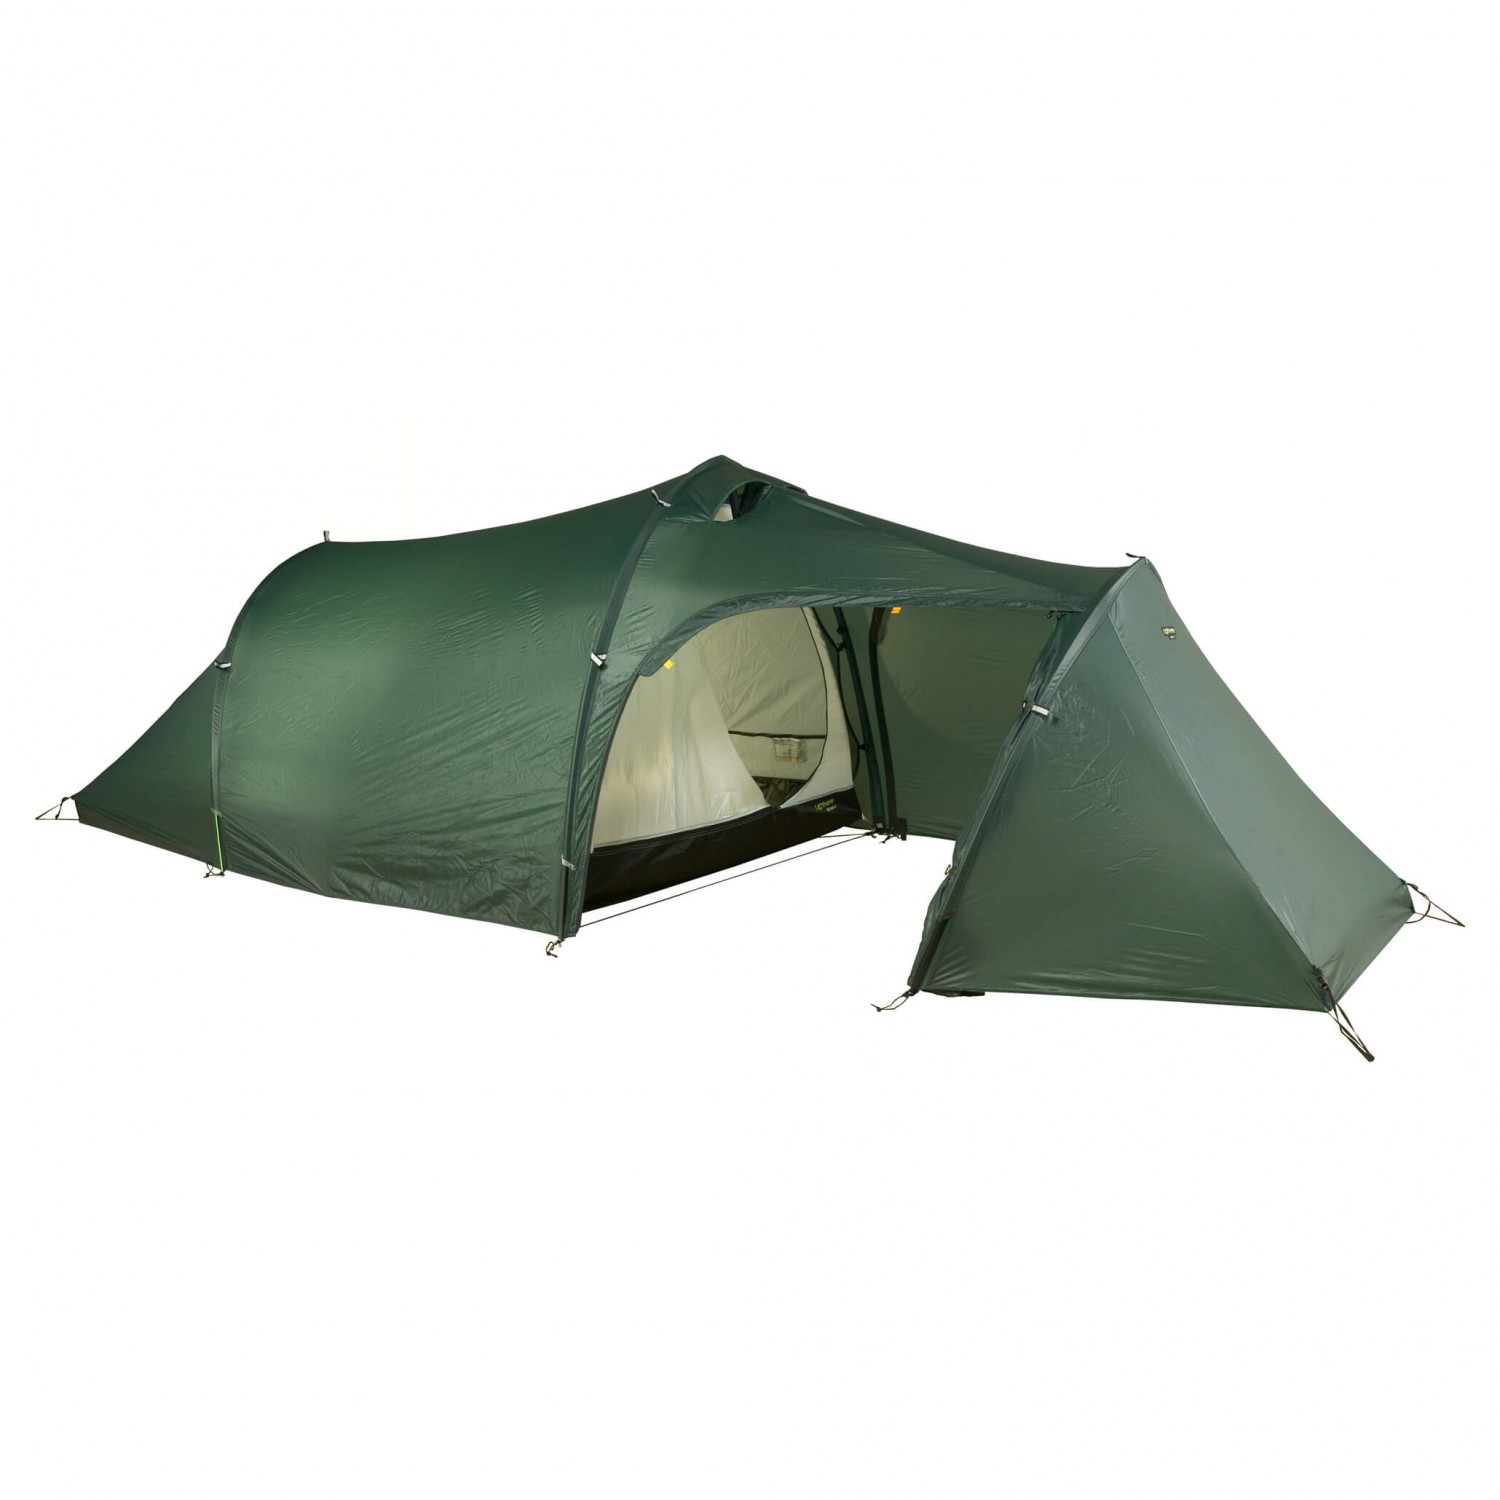 Lightwave - T20 Hyper XT - 2-person tent ...  sc 1 st  Alpinetrek : lightwave tents - memphite.com